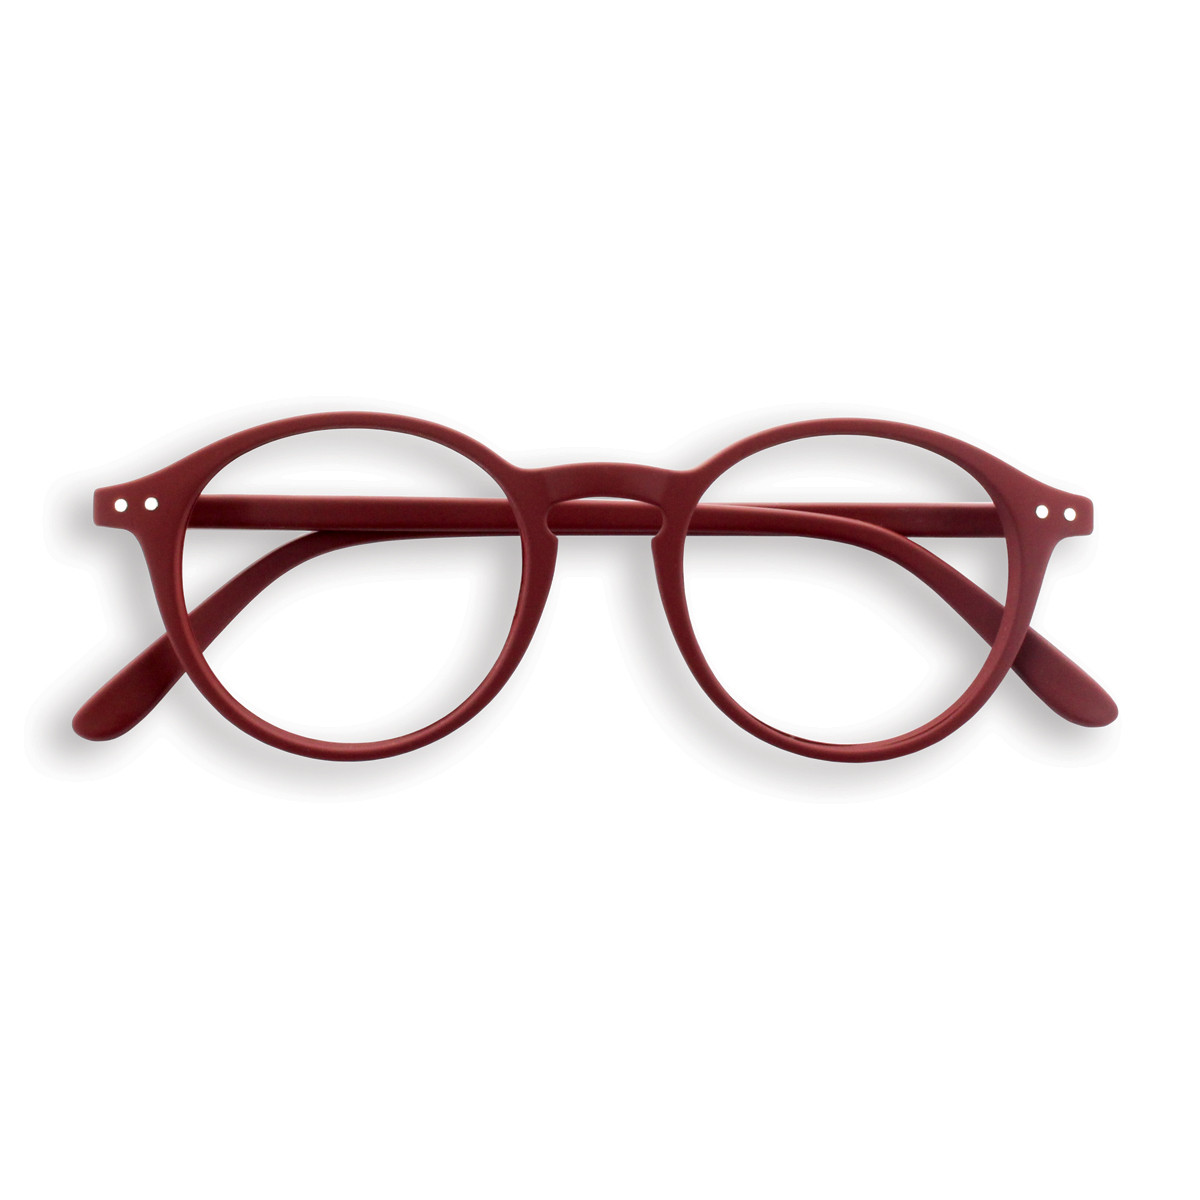 Izipizi new style reading glasses - deep red